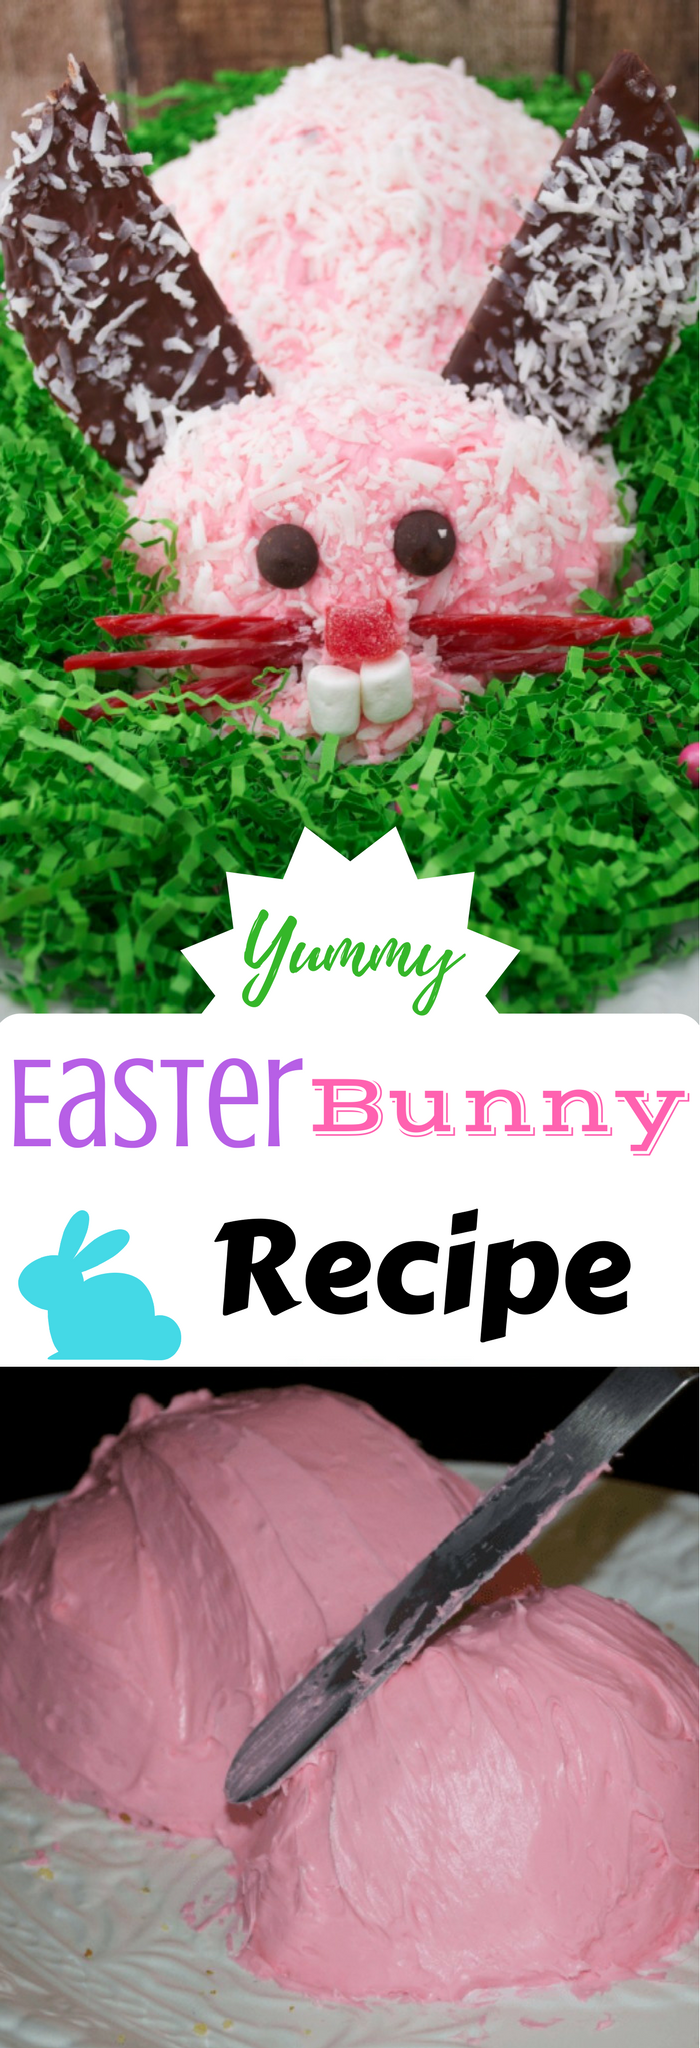 Easy Easter Bunny Cake  This is a great tutorial instructions including photos for making an Easter Bunny Cake Recipe. You don't need anything special & u can use just about any cake batter. Super Easy!